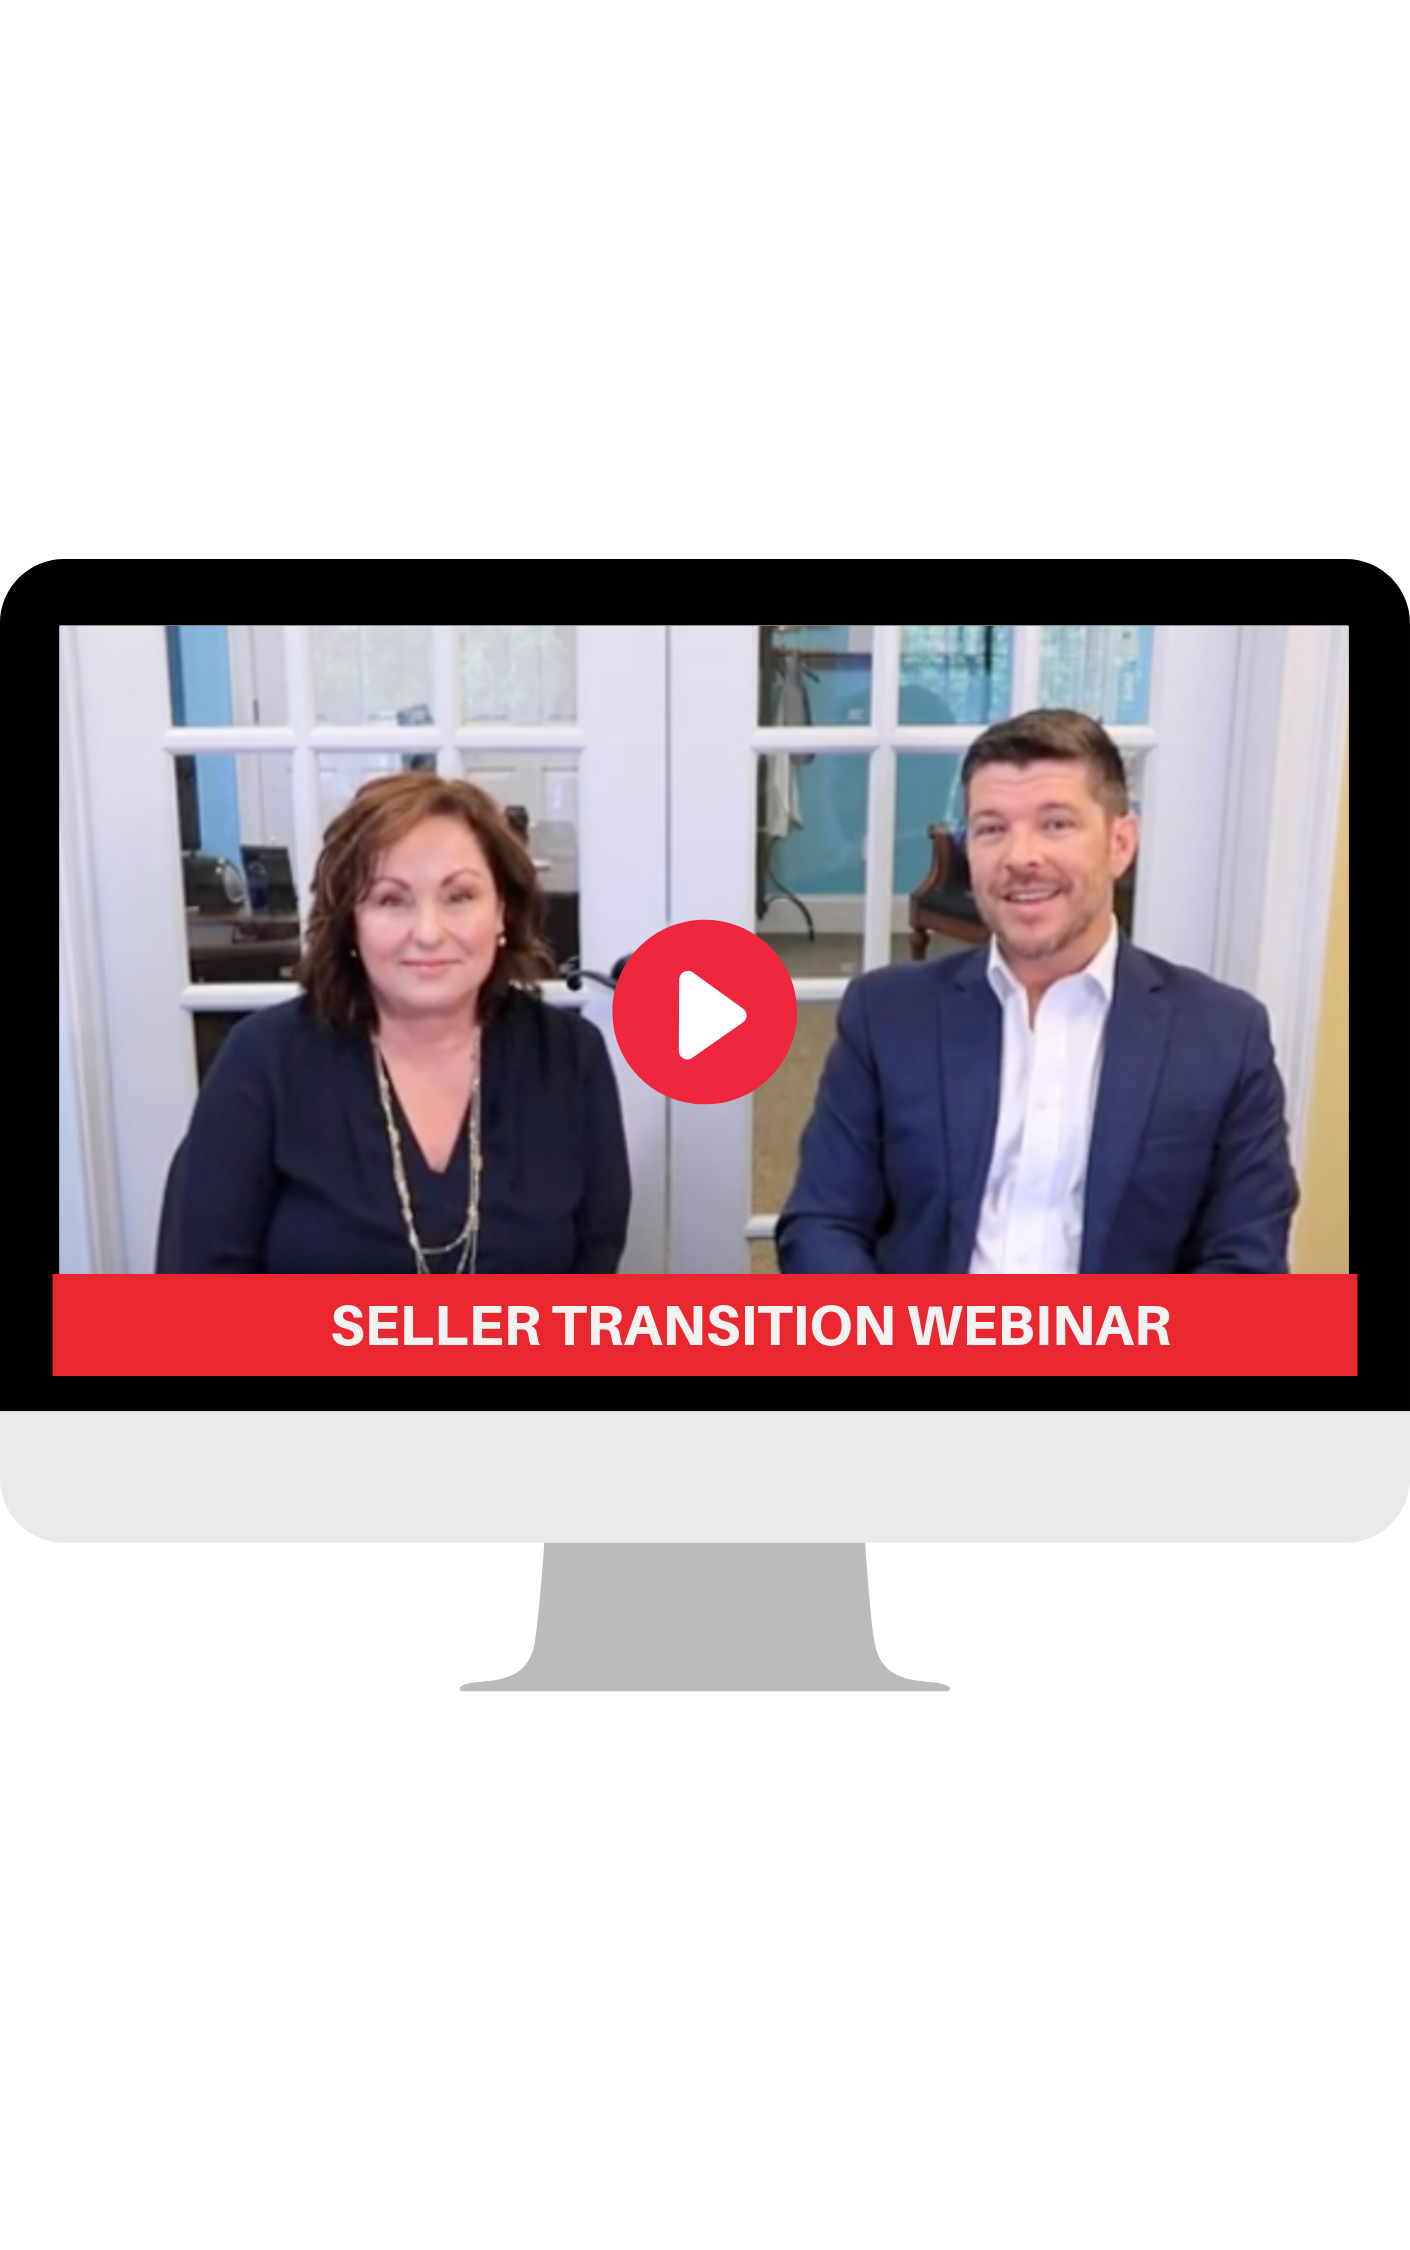 Seller Transition Webinar